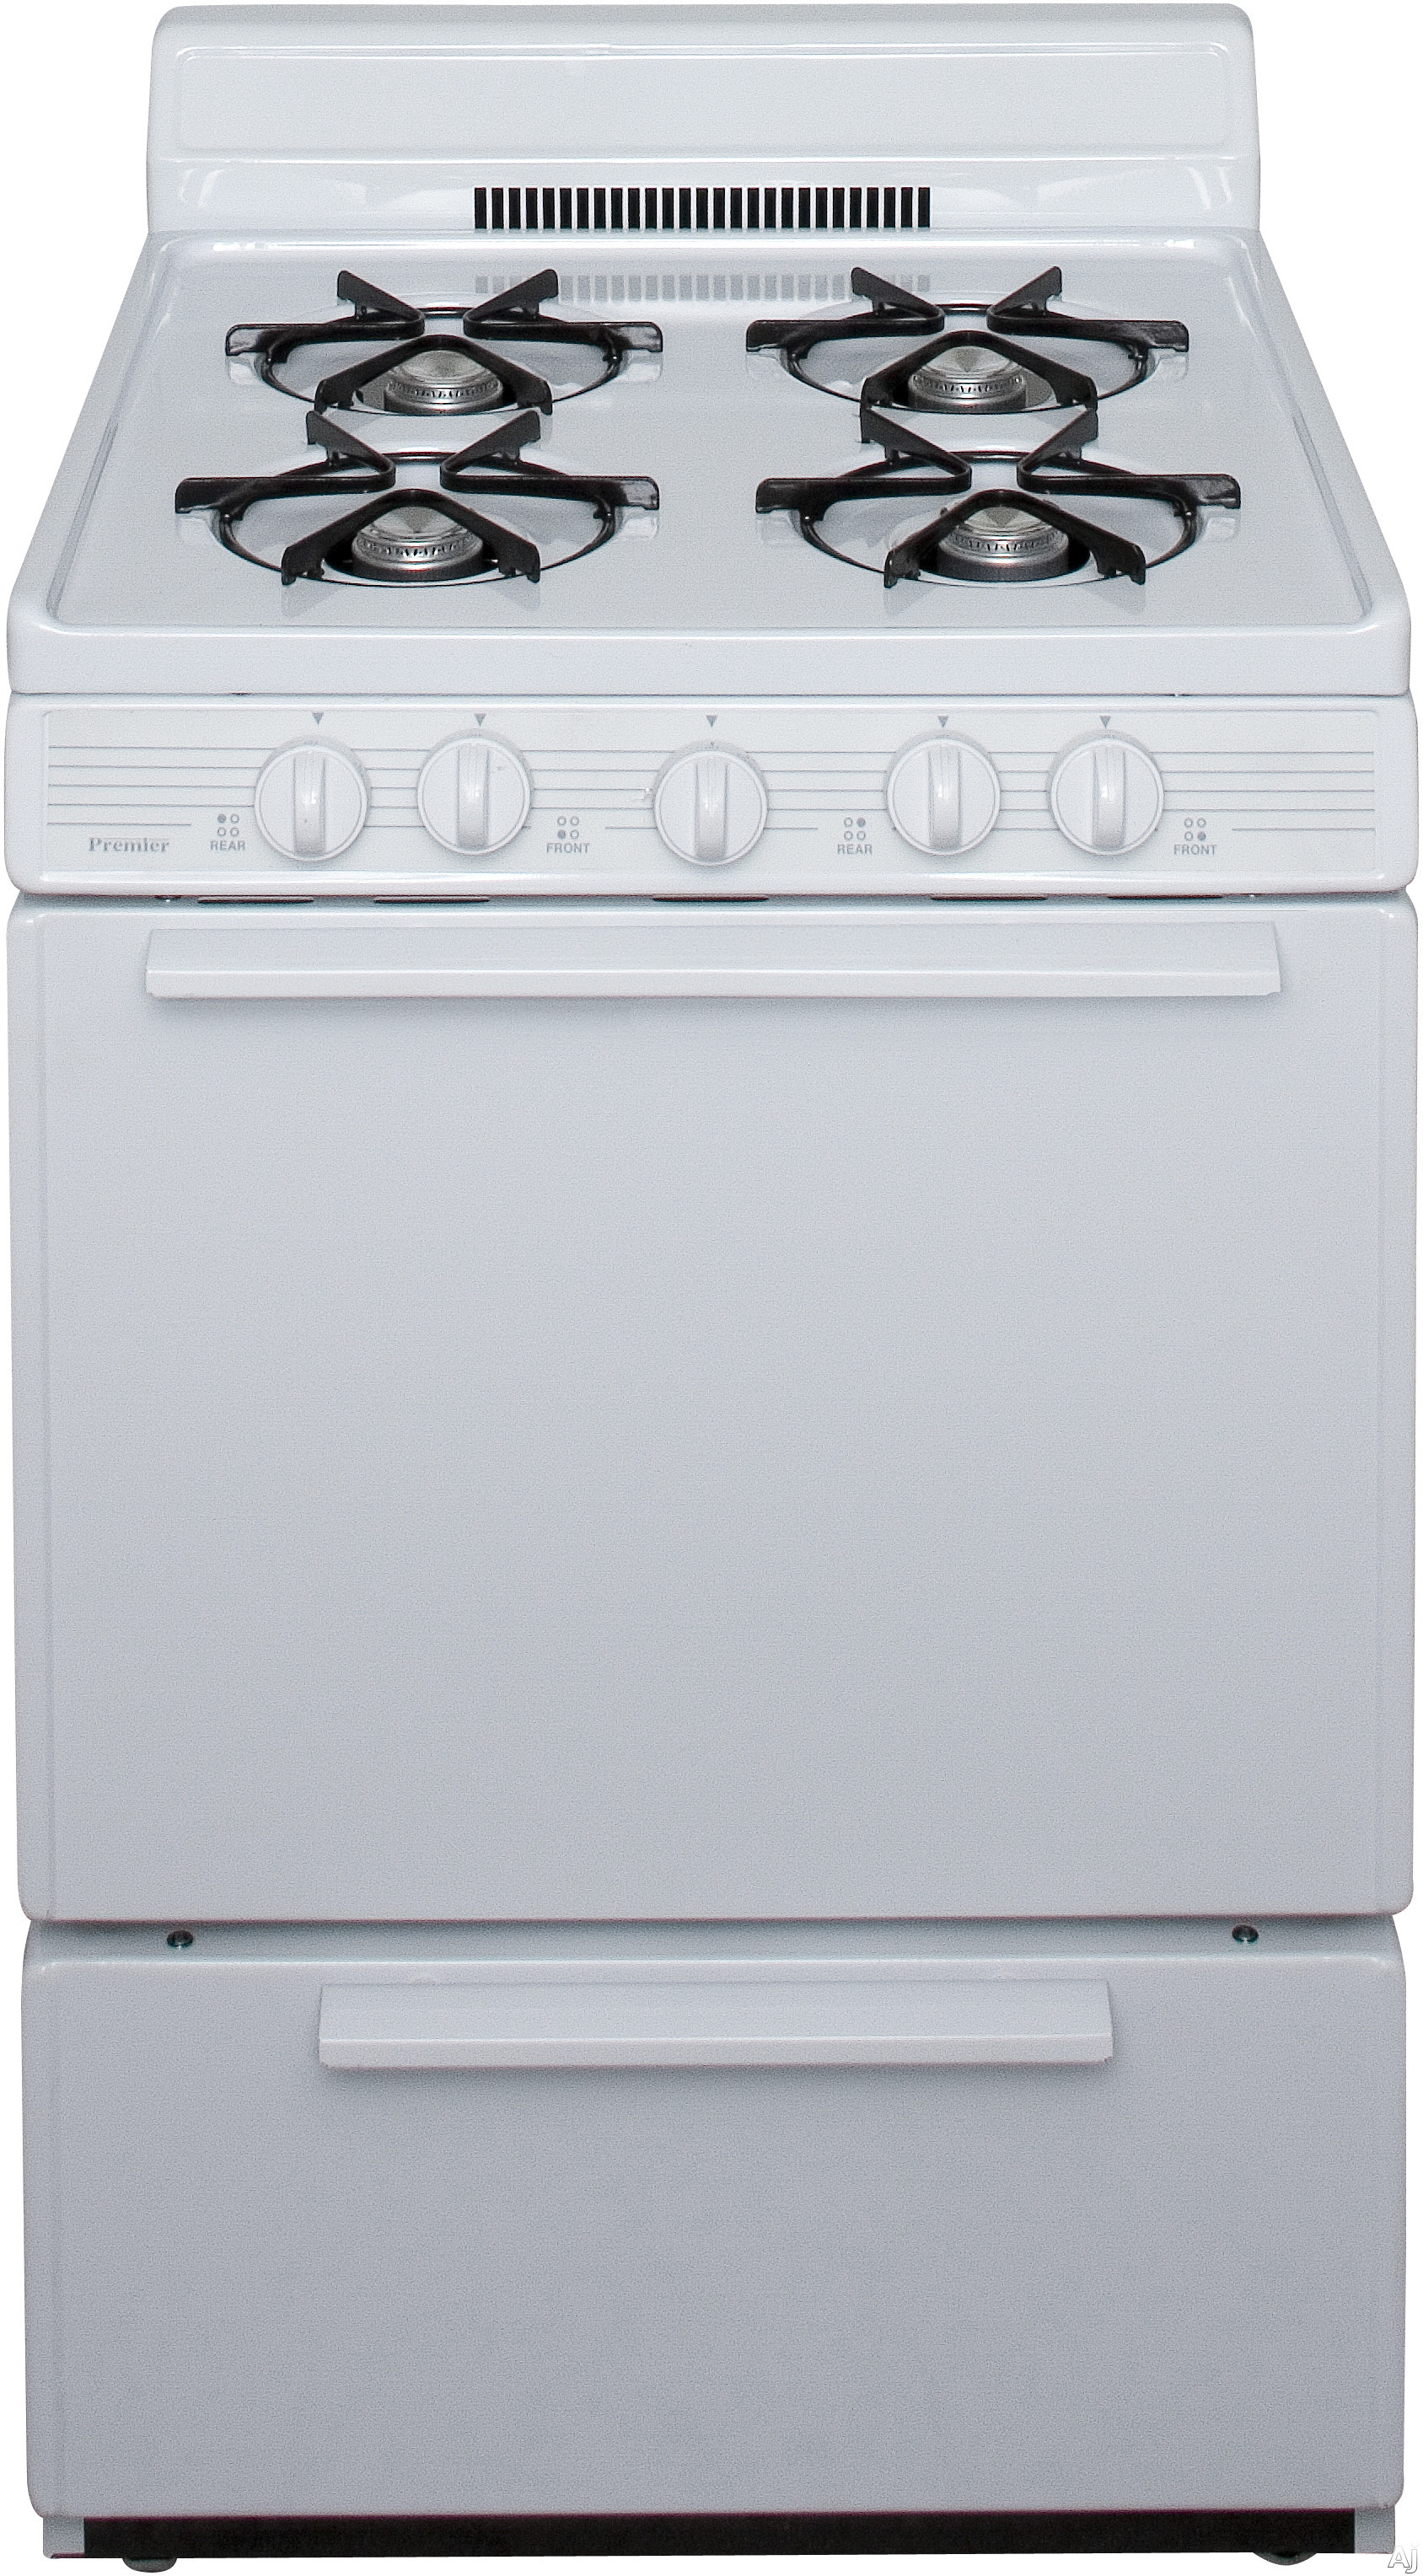 Premier BCK100OP 24 Inch Freestanding Gas Range with 4 Open Burners Battery Spark Ignition 17 000 BTU Burner and 4 Inch Porcelain Backguard White